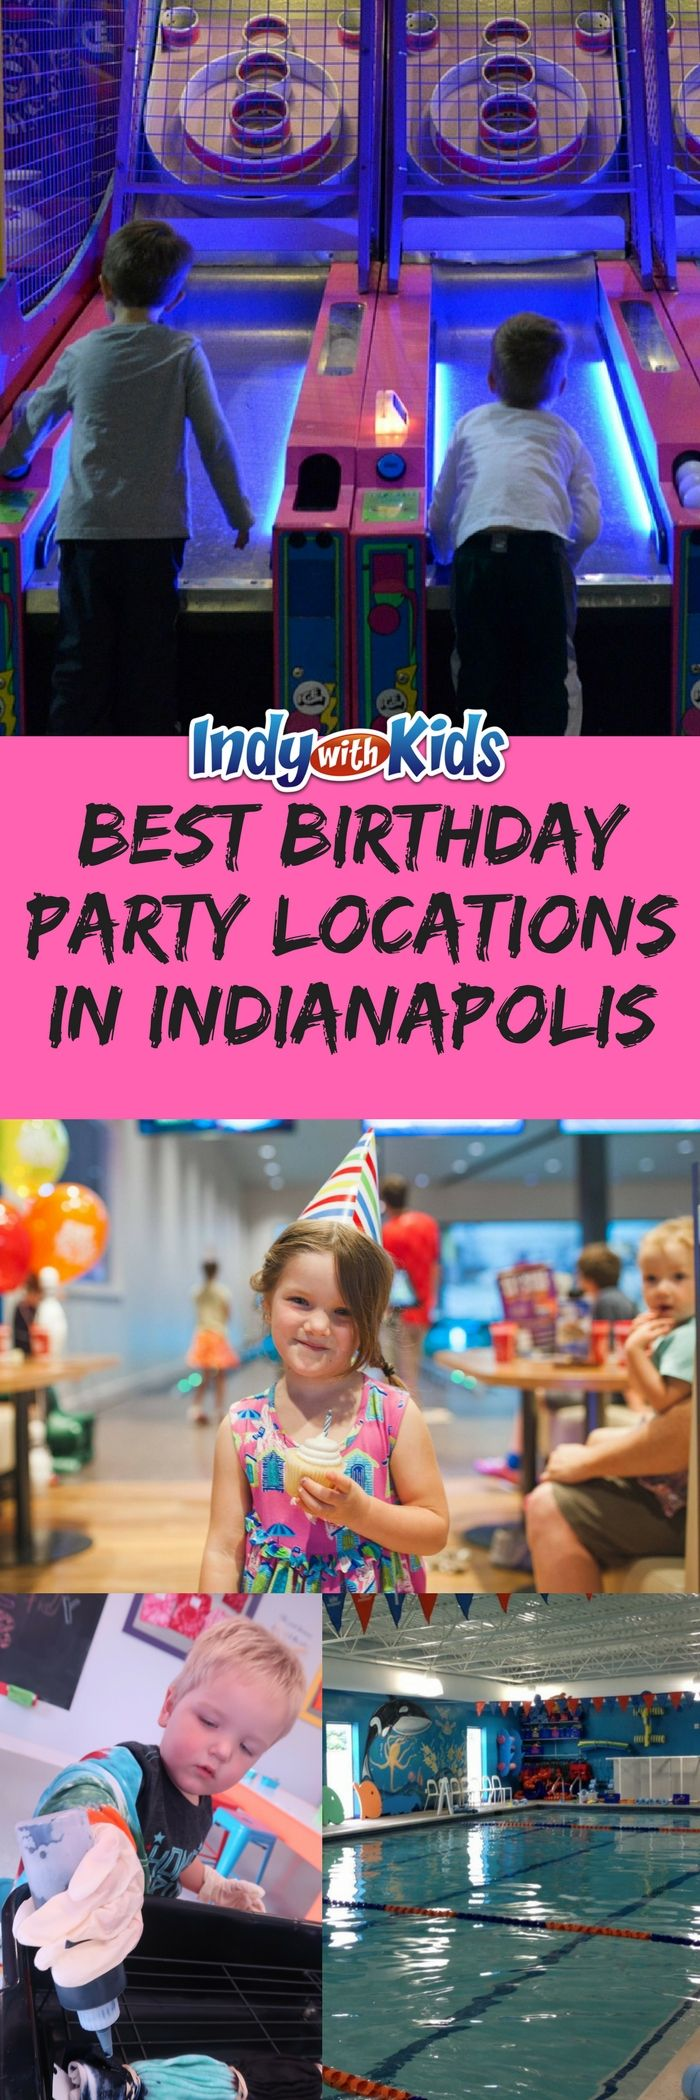 Kids Birthday Party Places.Indianapolis Kids Birthday Party Location Ideas Indy With